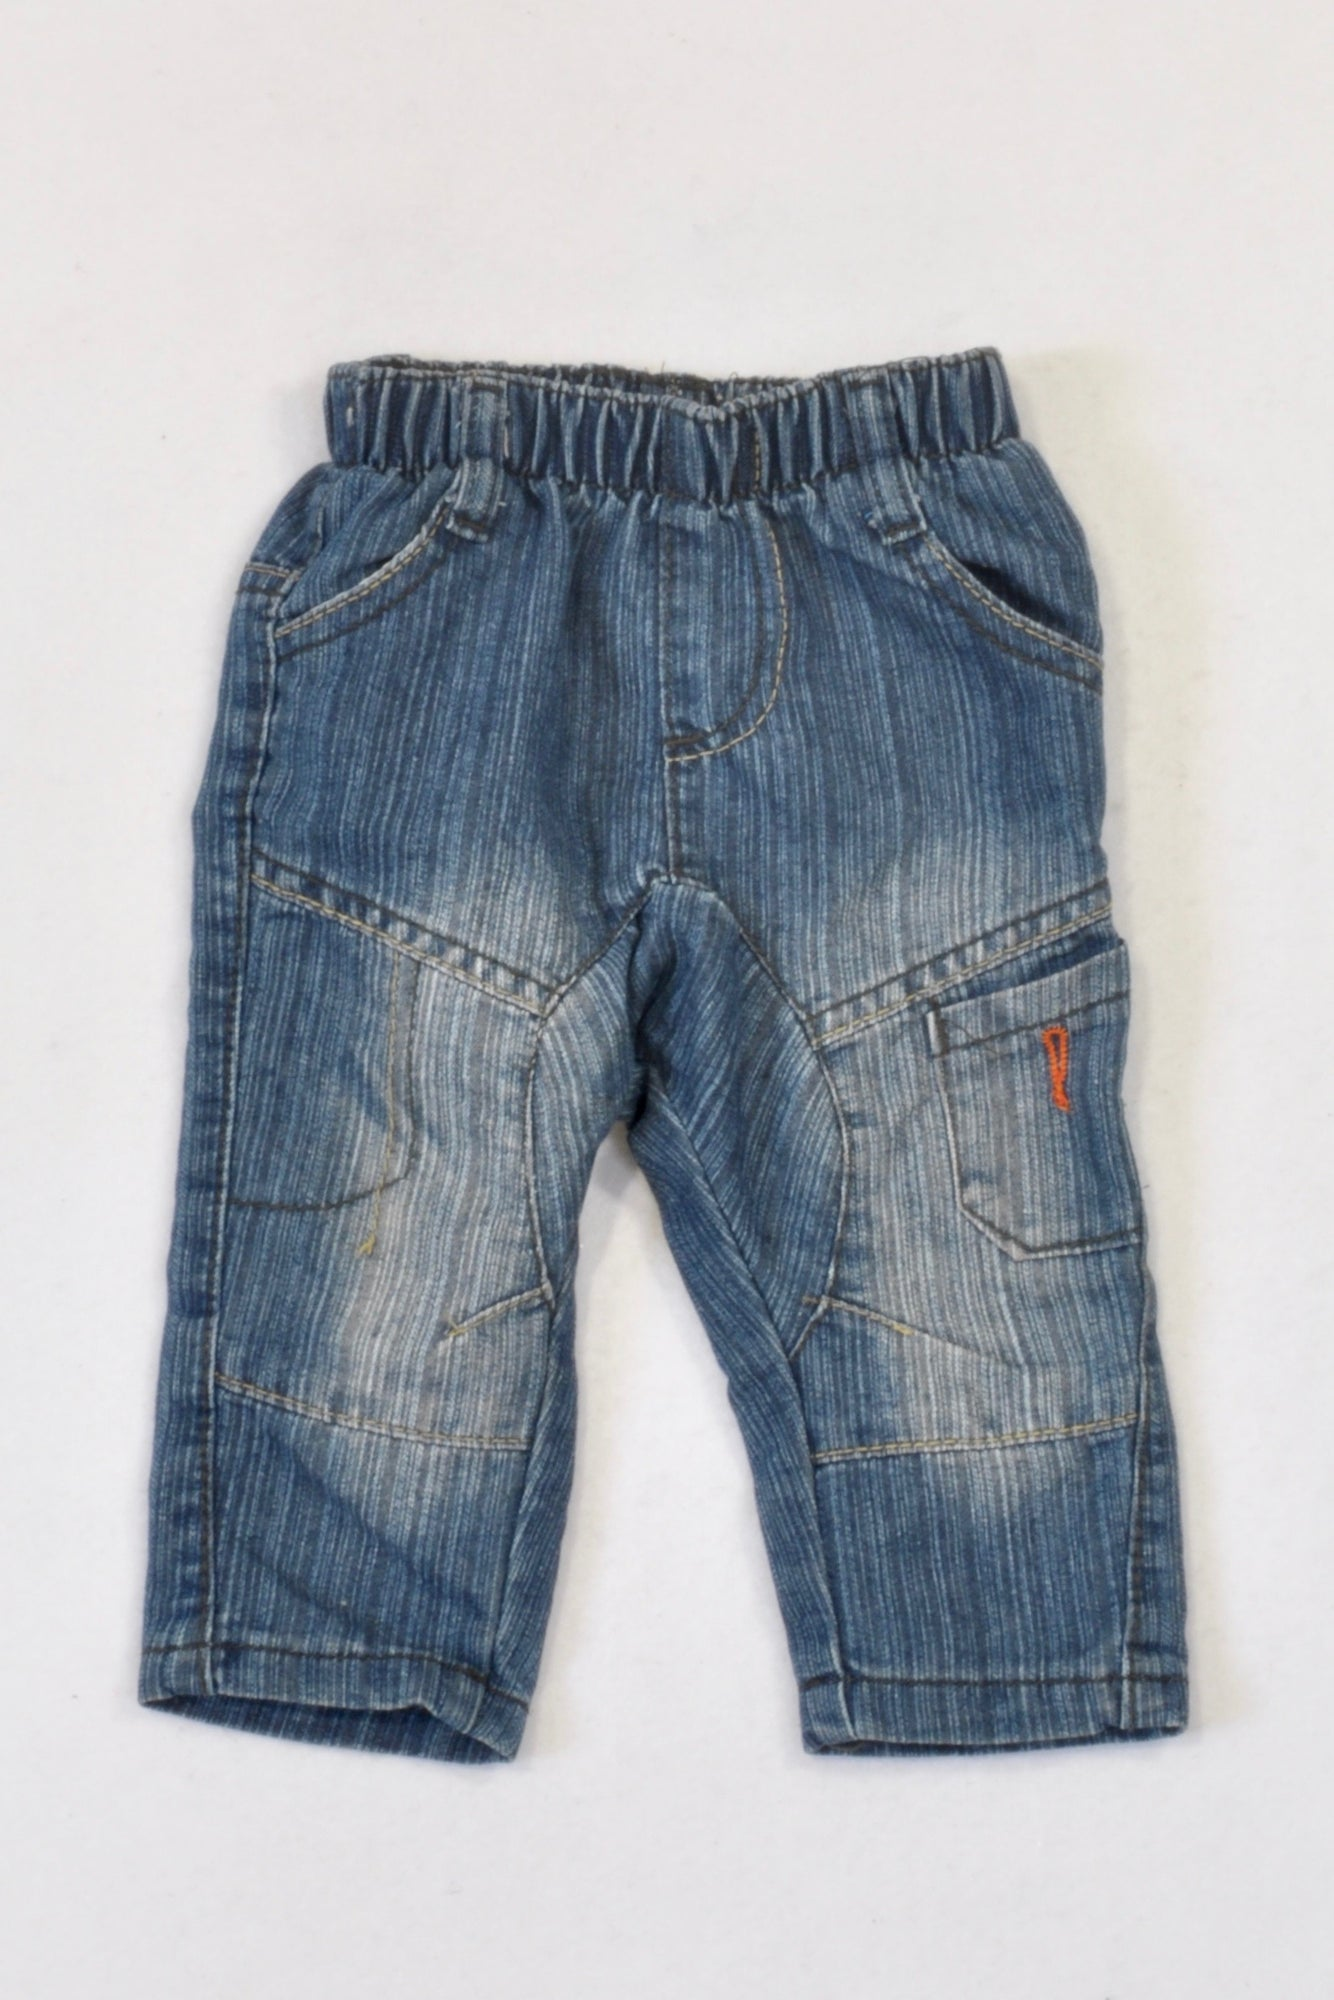 Ackermans Stone Washed Distressed Jeans Boys 6-12 months